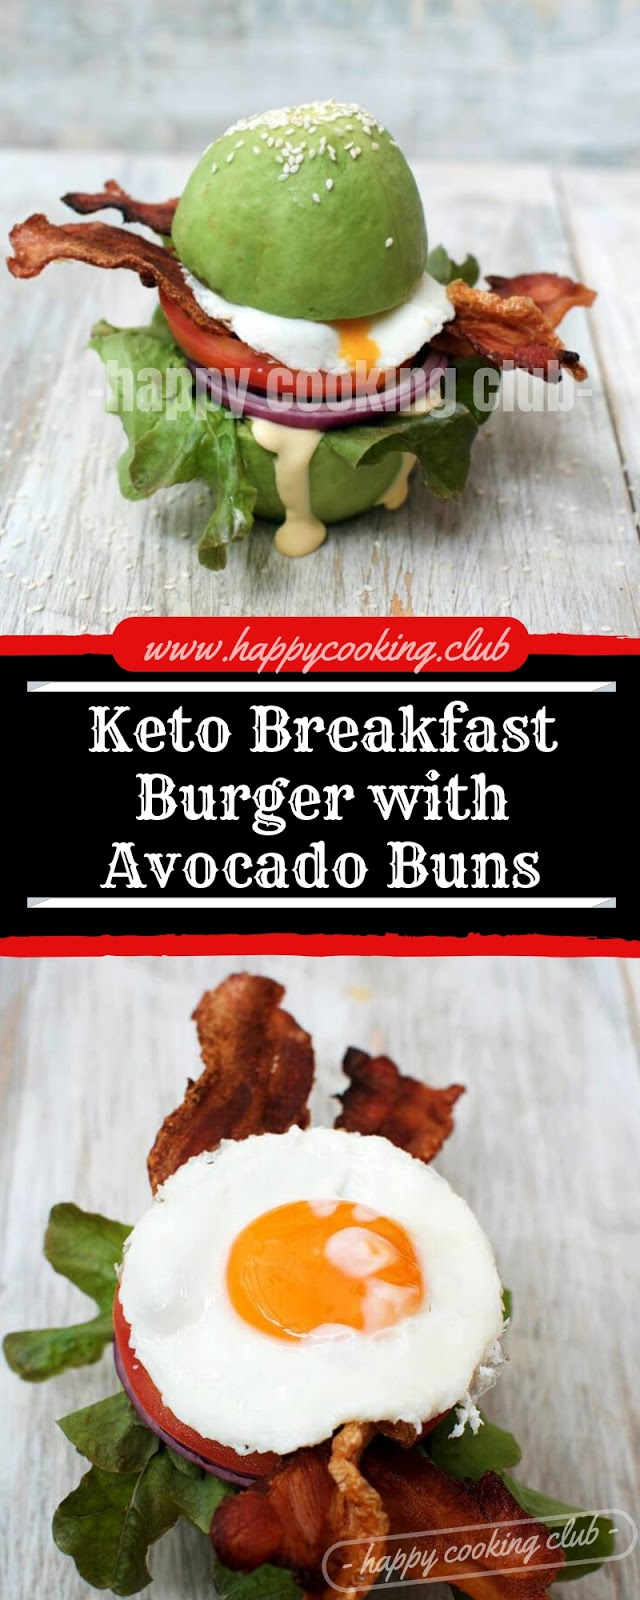 Keto Breakfast Burger with Avocado Buns